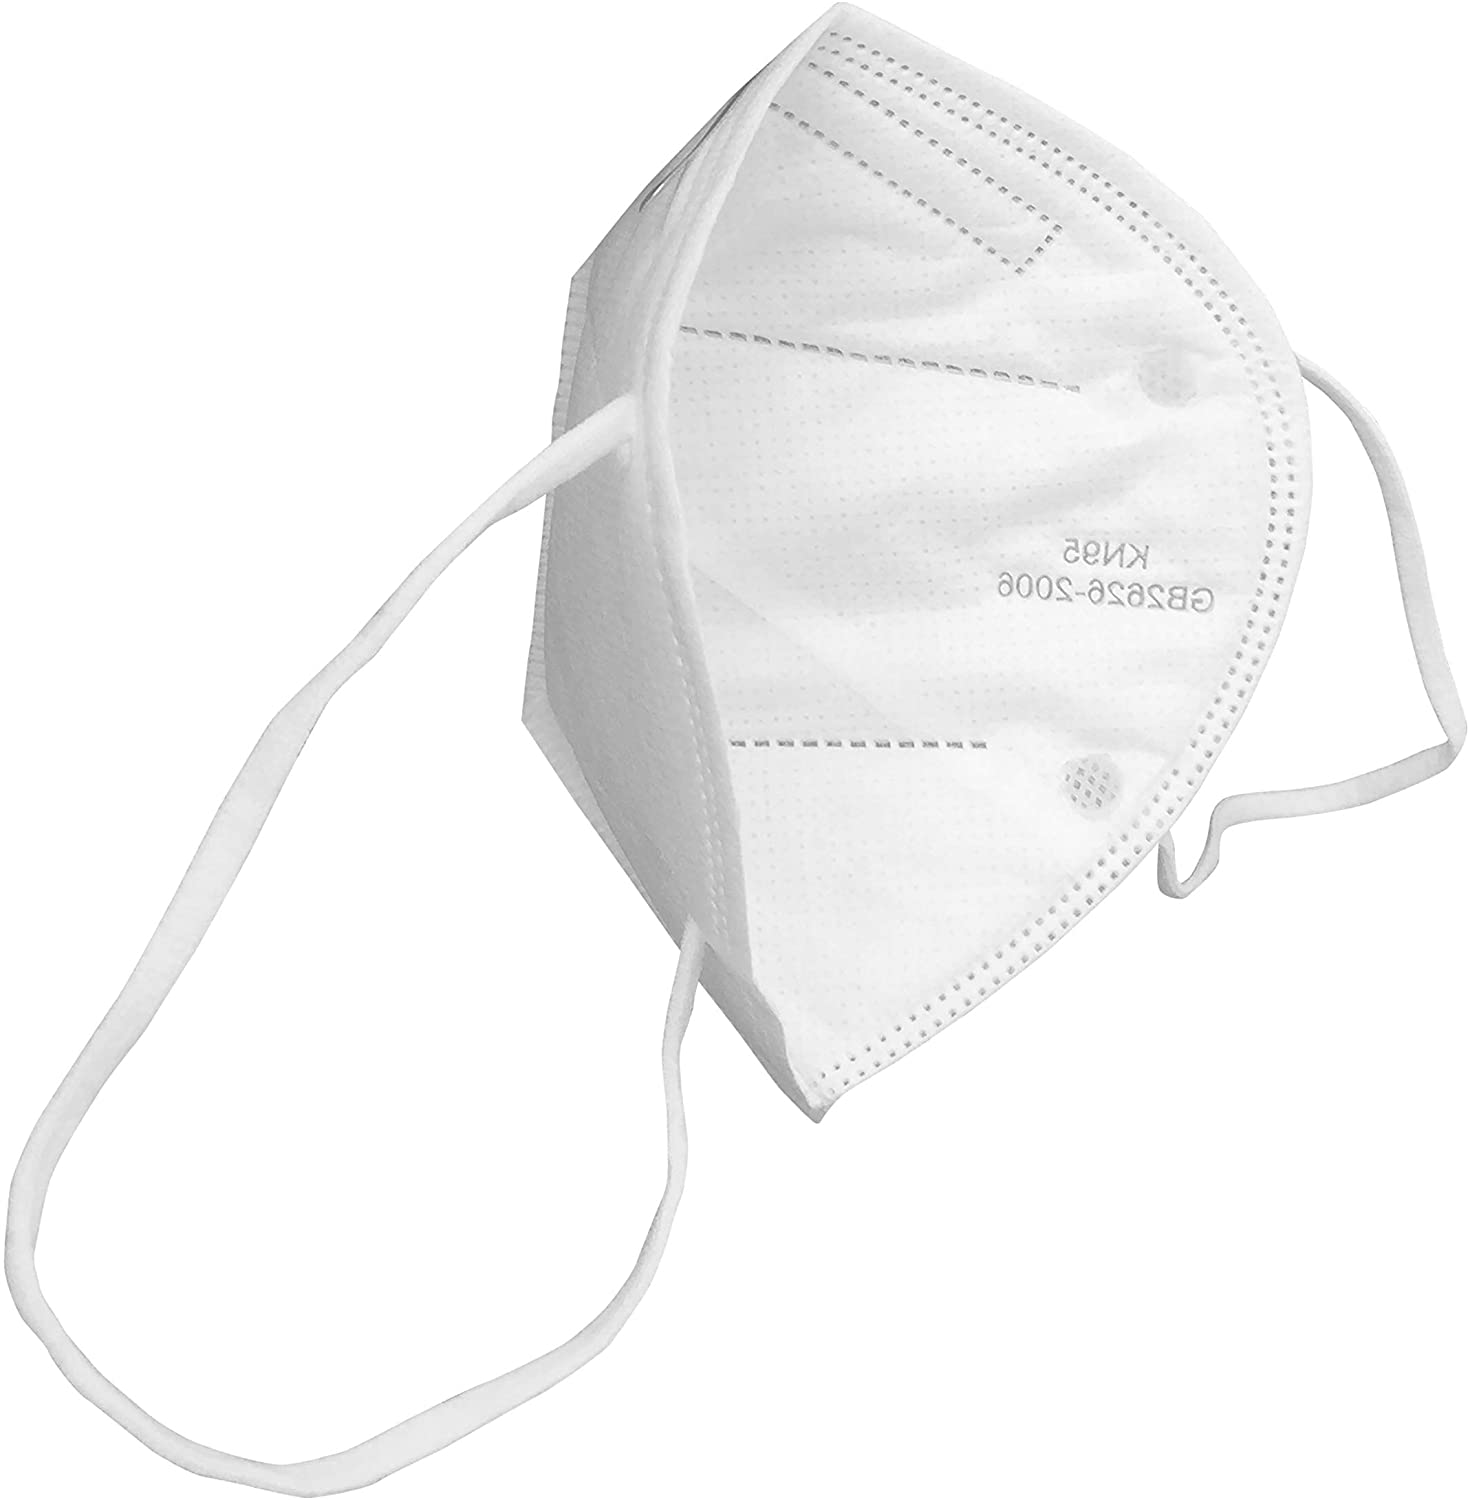 SupplyAID RRS-KN95-5PK KN95 Protective Mask, Protection Against PM2.5 Dust. Pollen and Haze-Proof, 5 Pack Standard